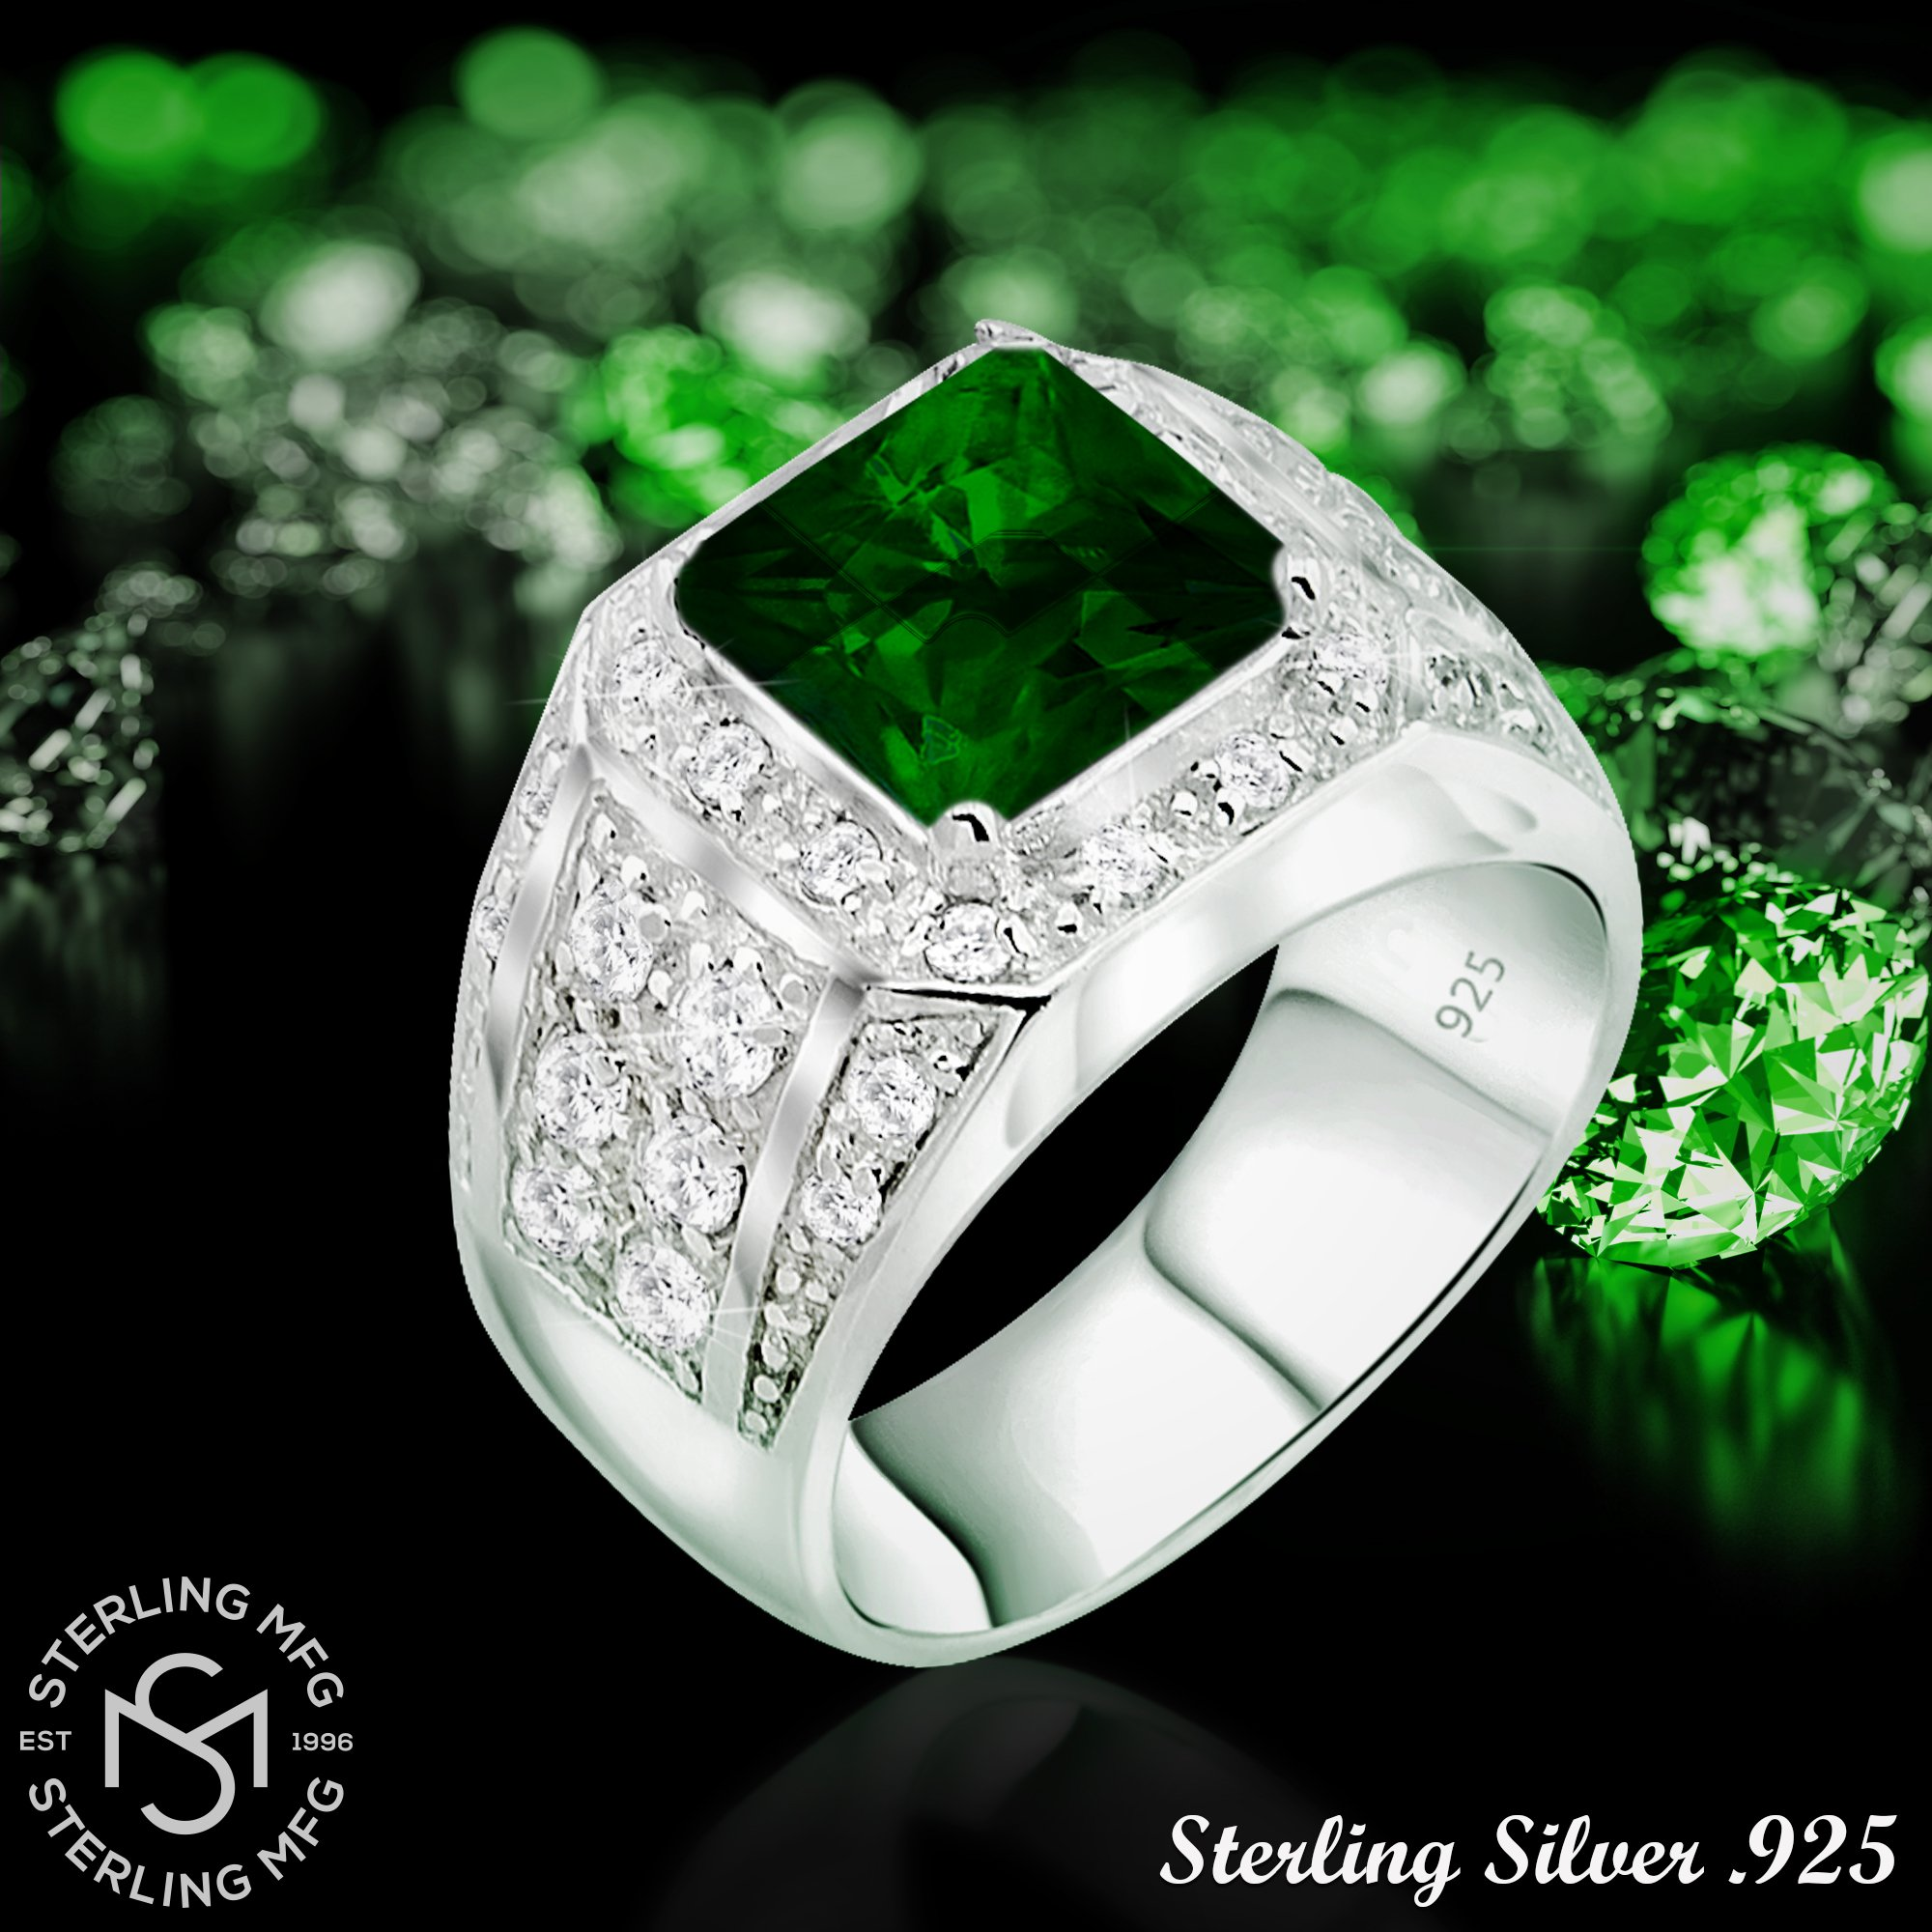 Men's Elegant Sterling Silver .925 Ring High Polish Princess Cut Featuring a Synthetic Green Emerald and 32 Fancy Round Cubic Zirconia (CZ) Stones by Sterling Manufacturers (Image #6)